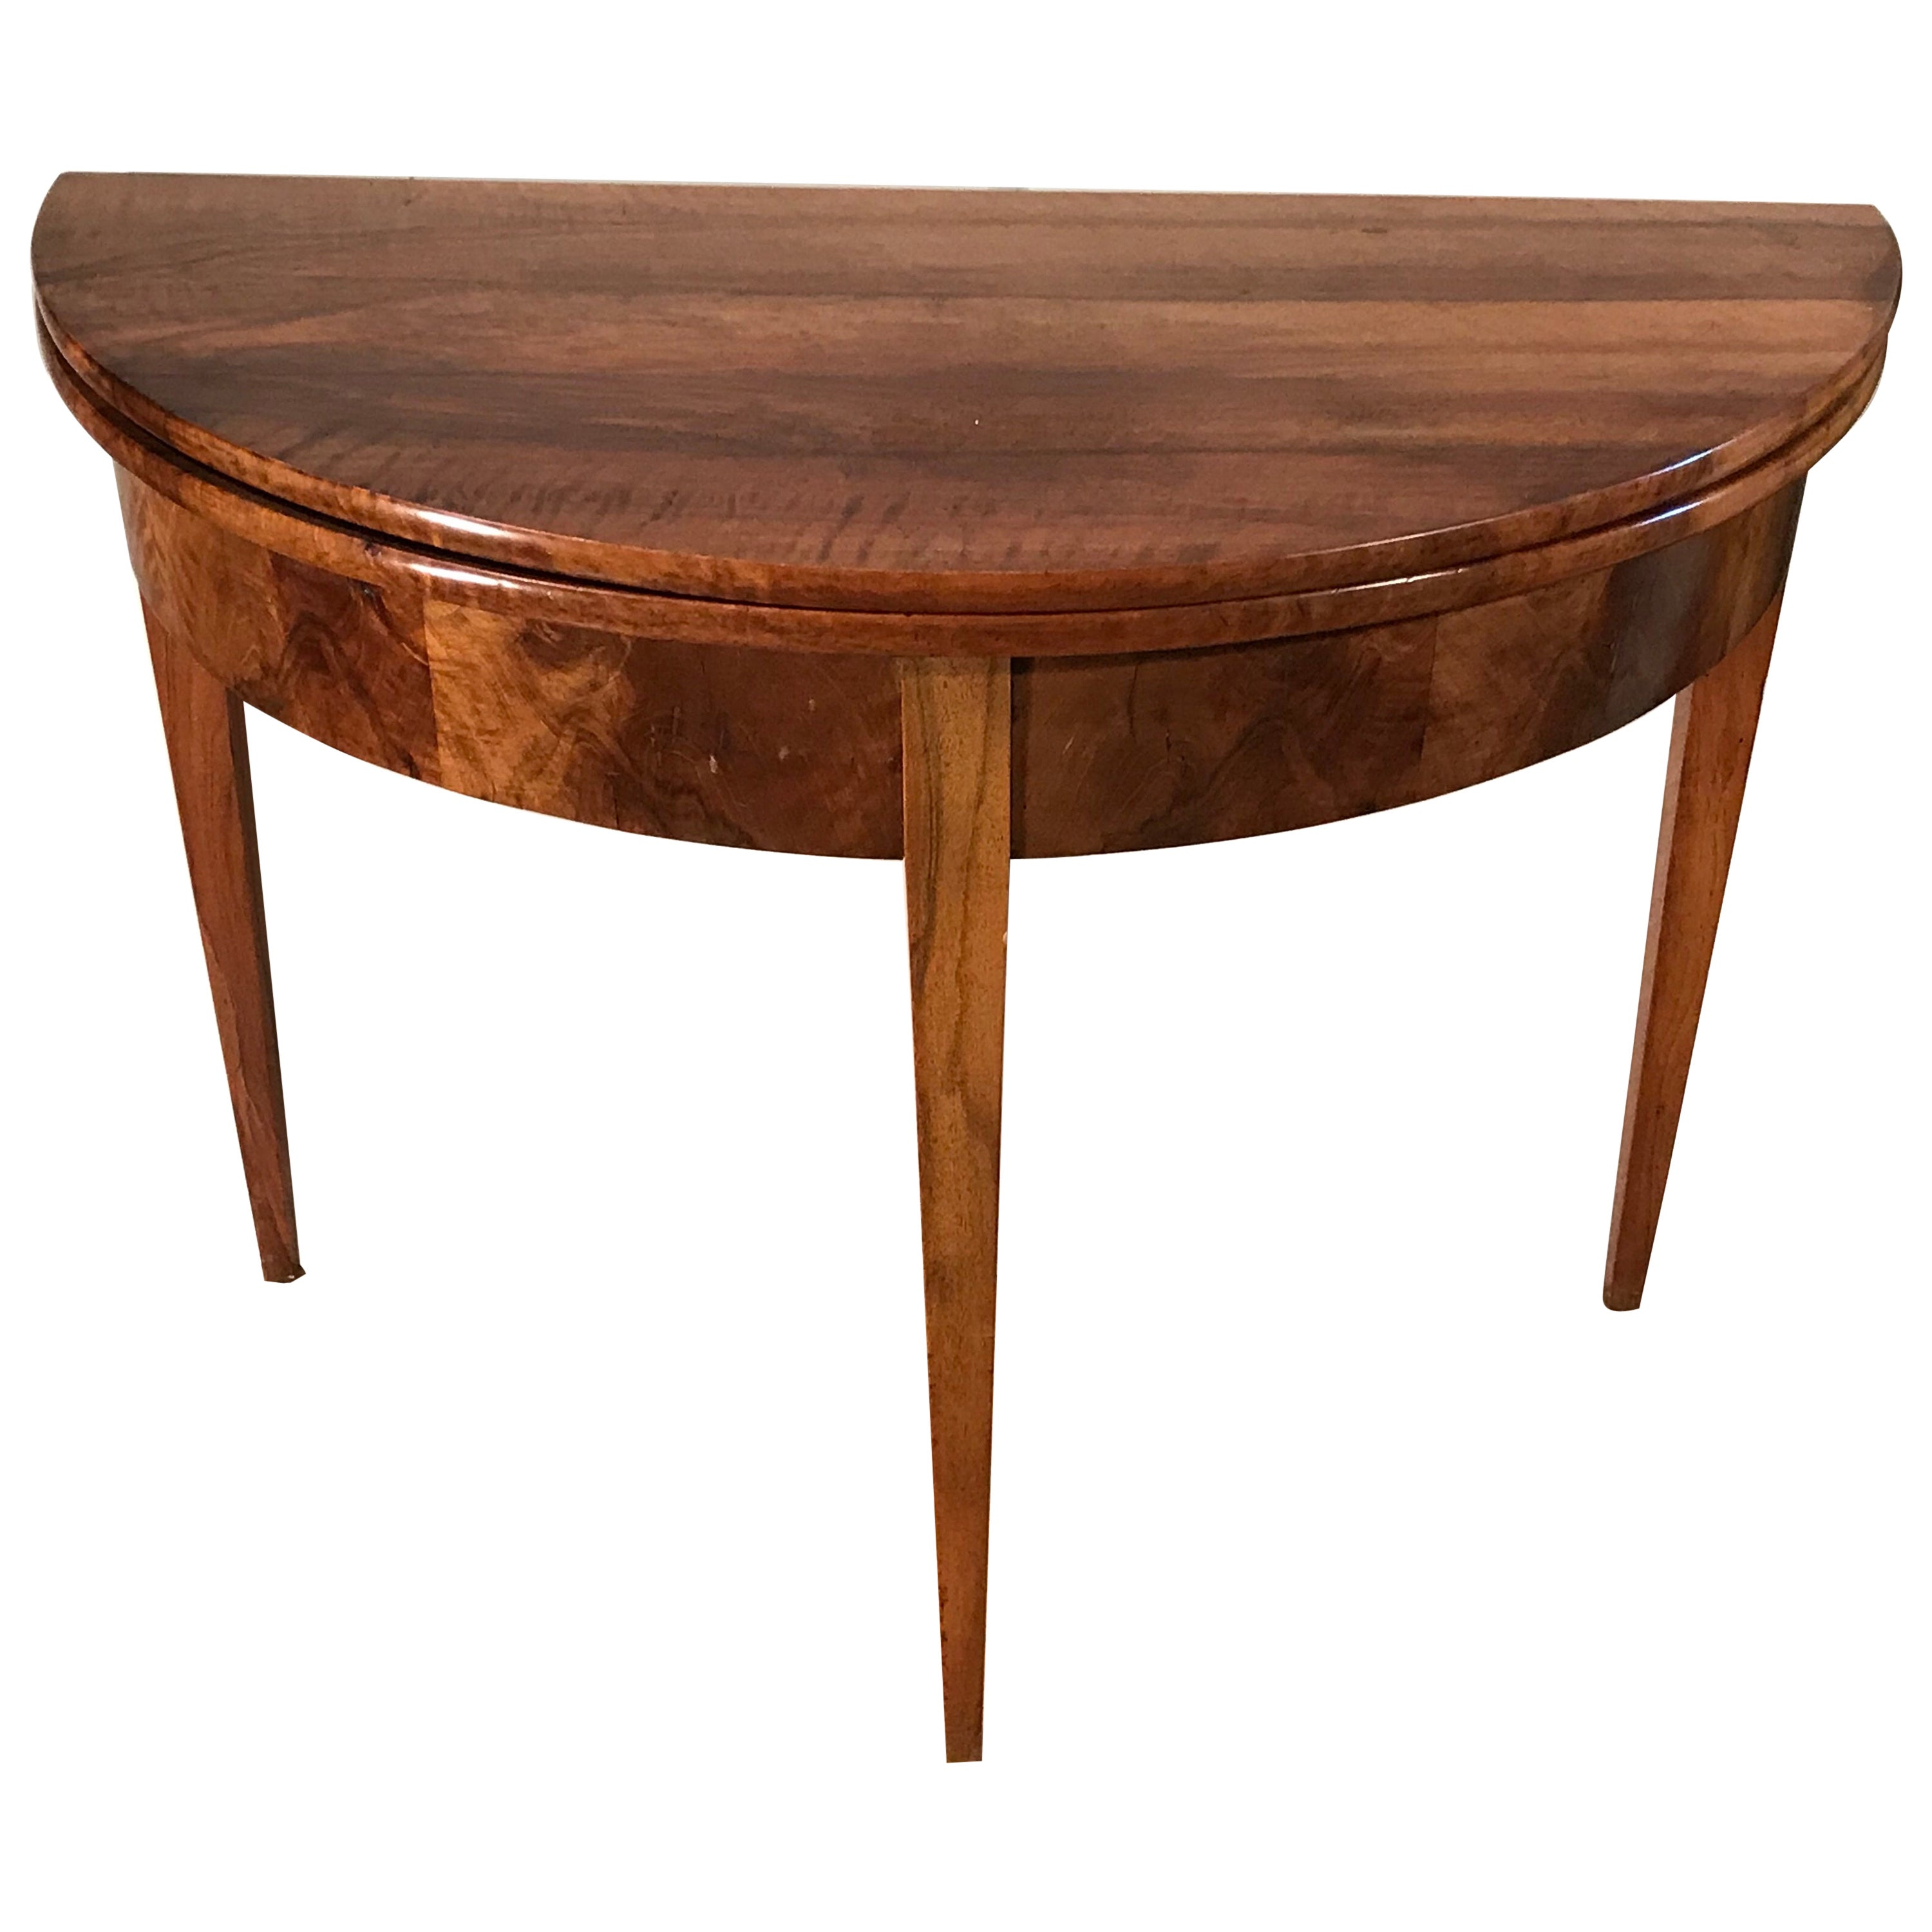 Biedermeier Demilune Table, 1820, Walnut Veneer